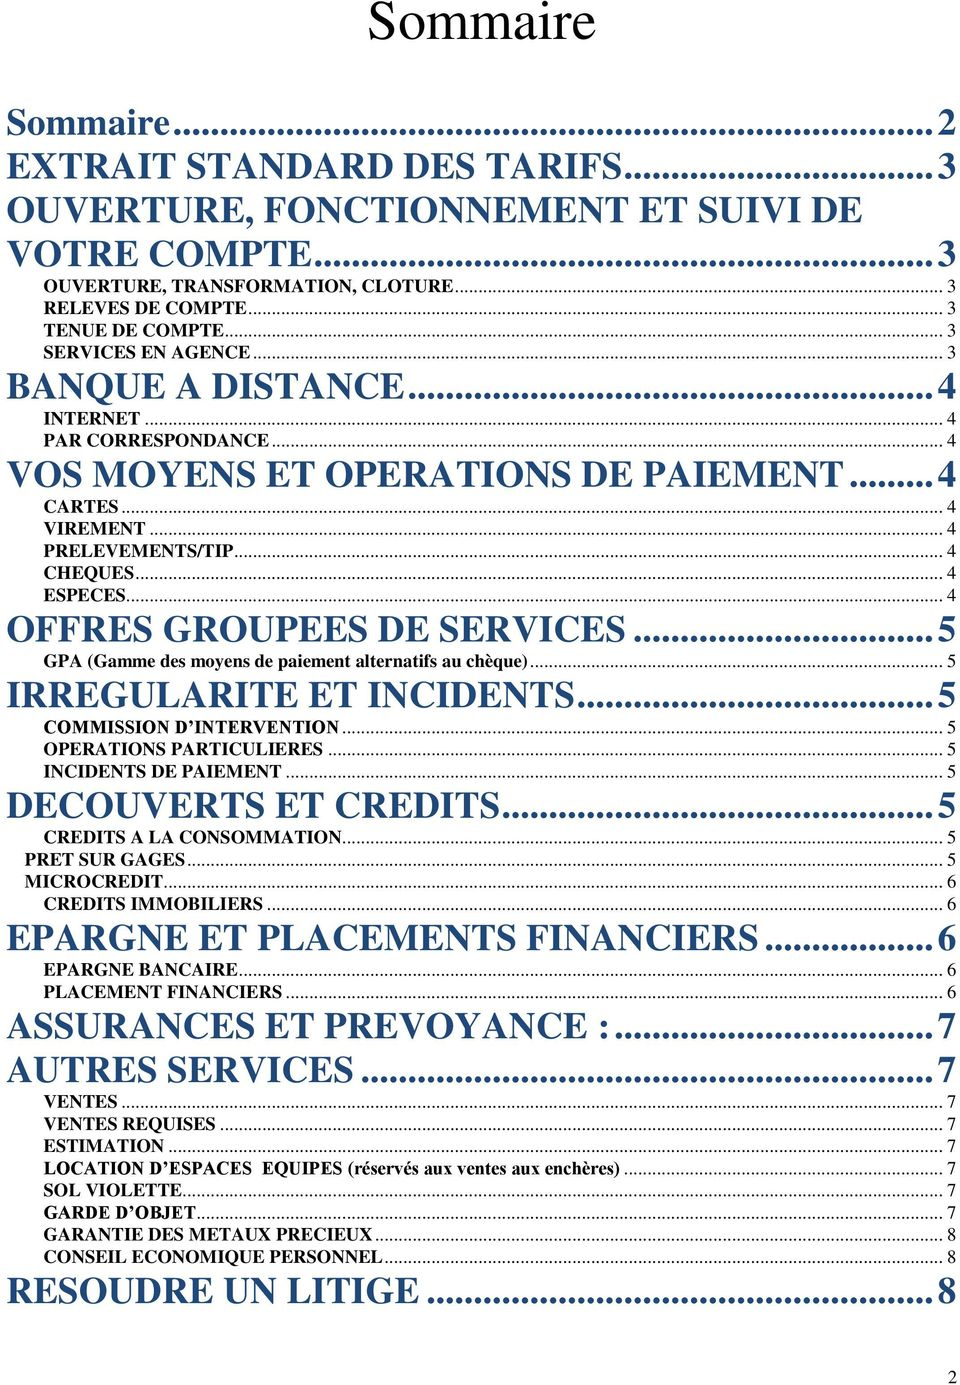 .. 4 OFFRES GROUPEES DE SERVICES... 5 GPA (Gamme des moyens de paiement alternatifs au chèque)... 5 IRREGULARITE ET INCIDENTS... 5 COMMISSION D INTERVENTION... 5 OPERATIONS PARTICULIERES.